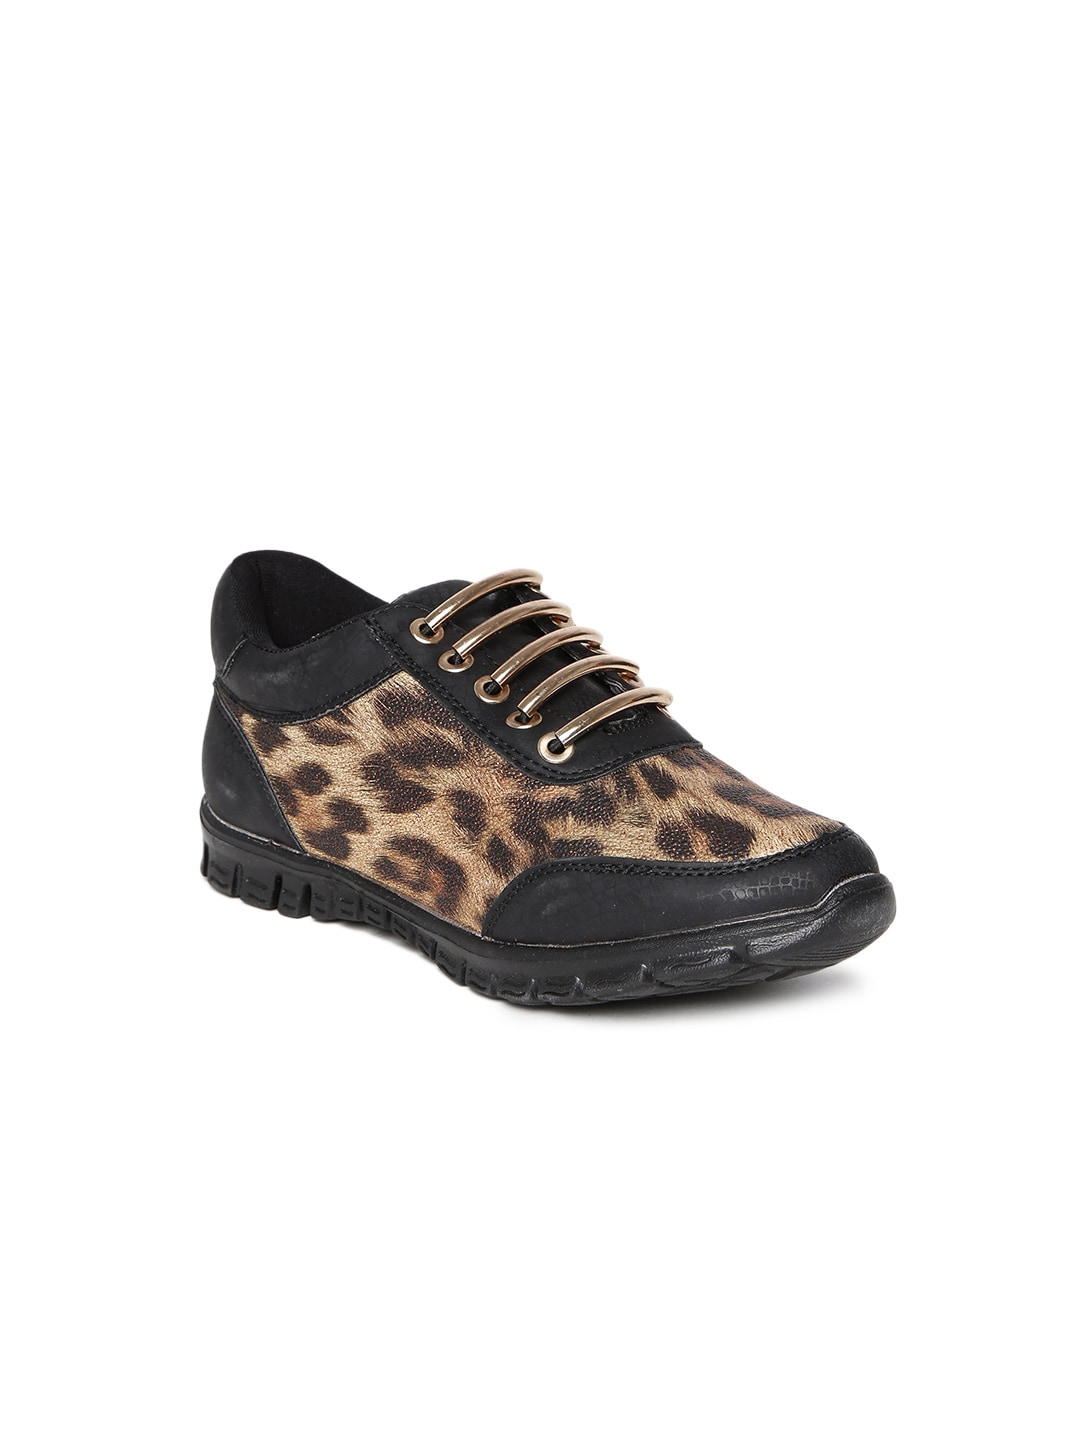 Casual Shoes For Women - Buy Women s Casual Shoes Online from Myntra c2b95c83d5